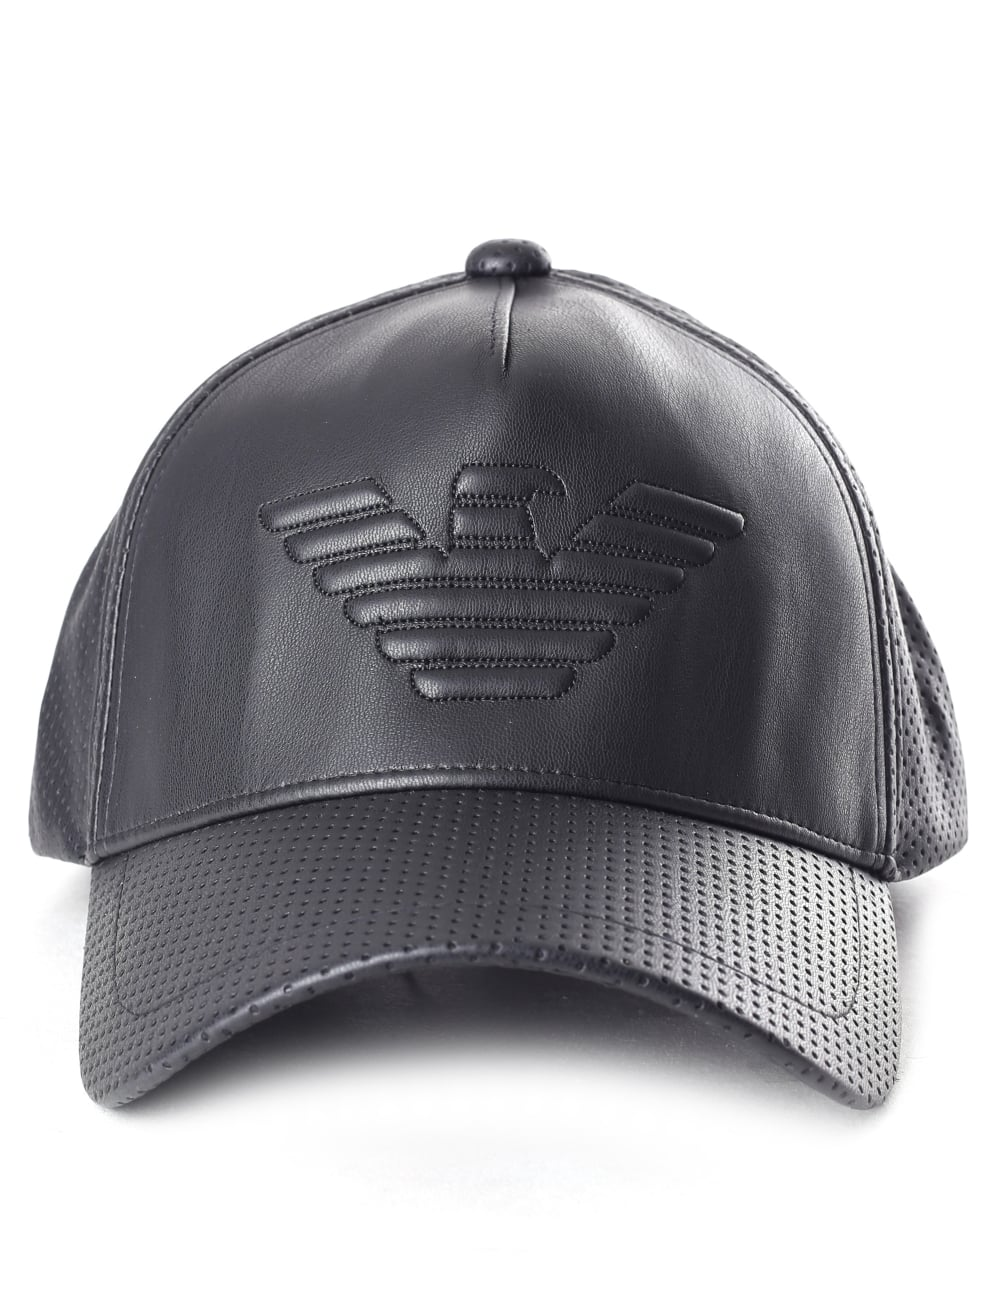 9d84e8c4 Emporio Armani Men's Perforated Logo Baseball Cap